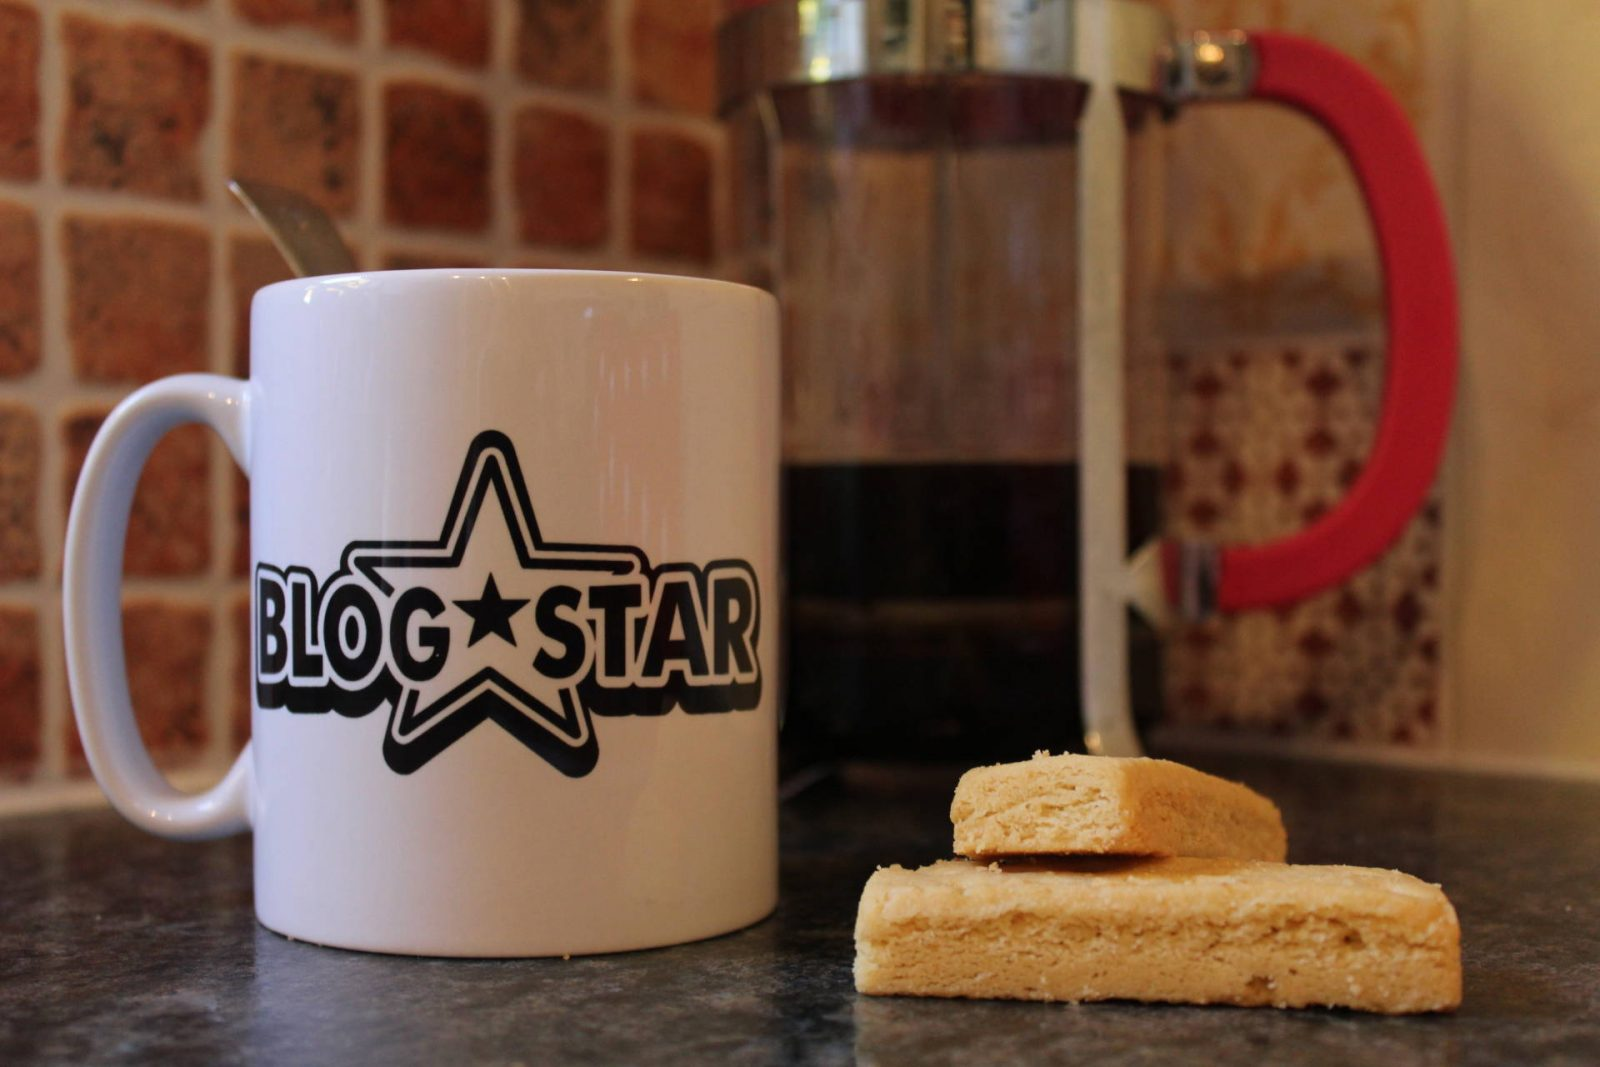 blog star mugs from Charlie Moo's